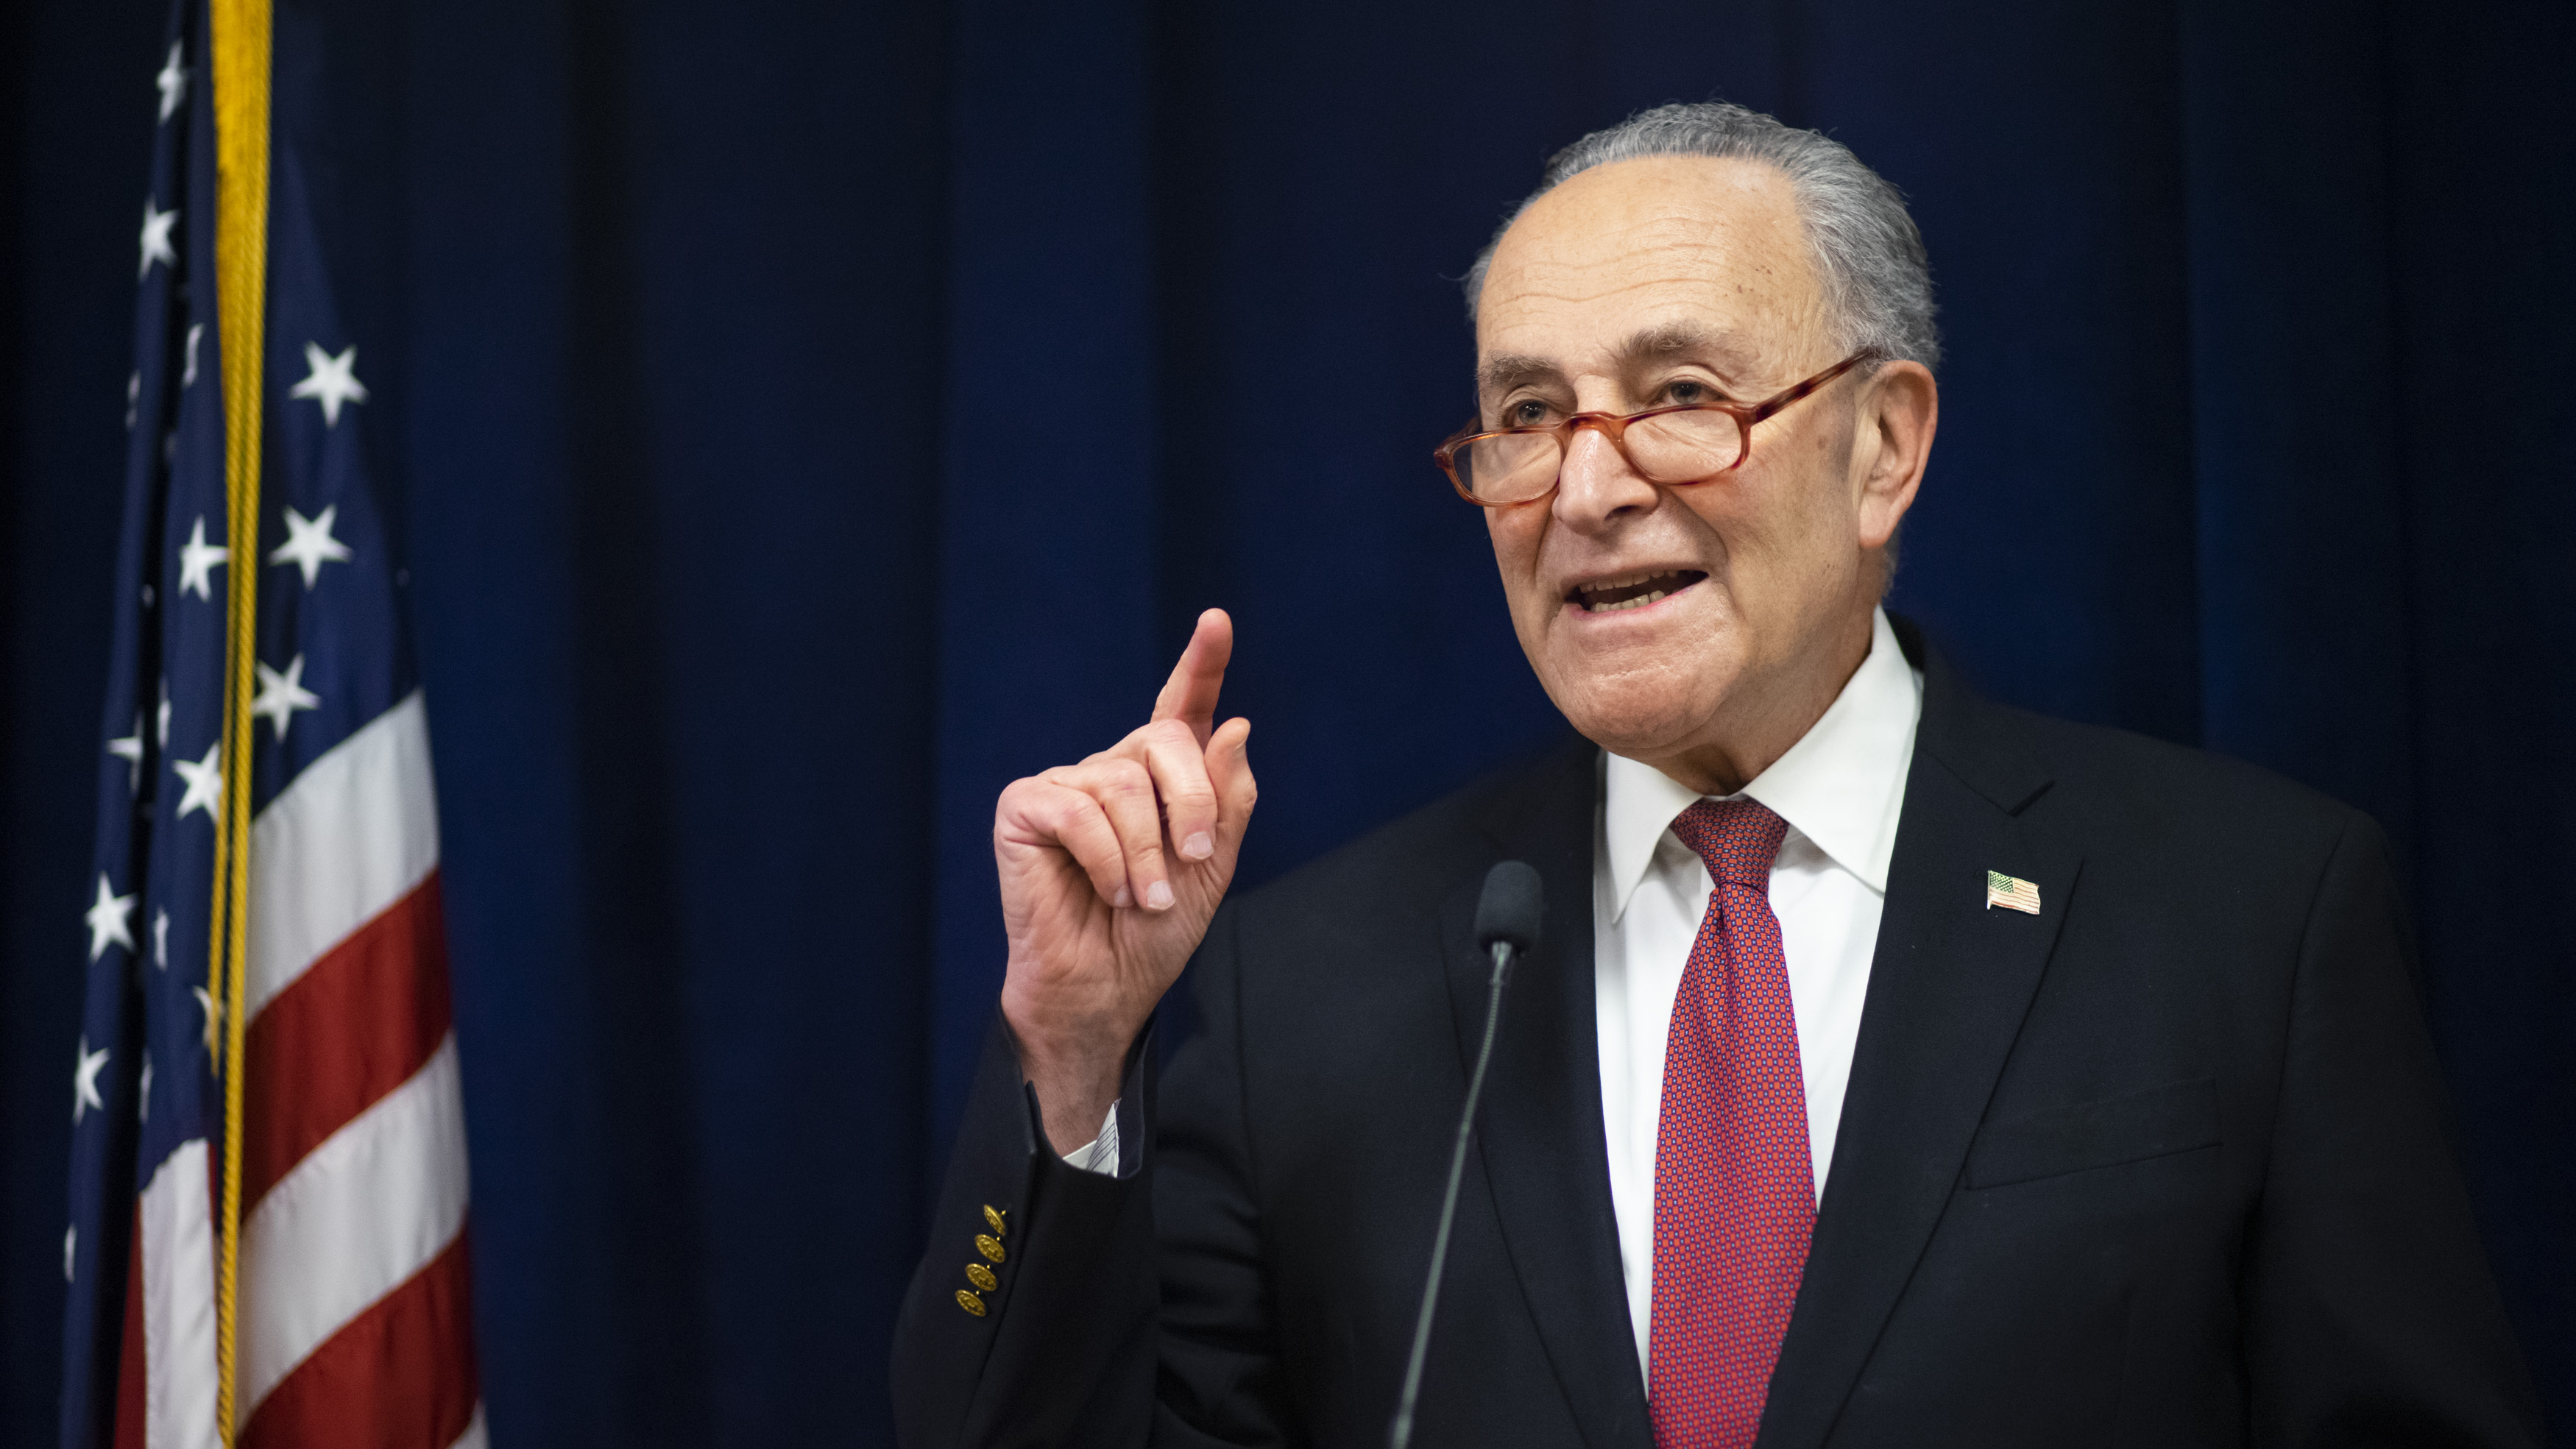 Sen. Chuck Schumer of New York speaking at his Manhattan office on February 6, 2020.